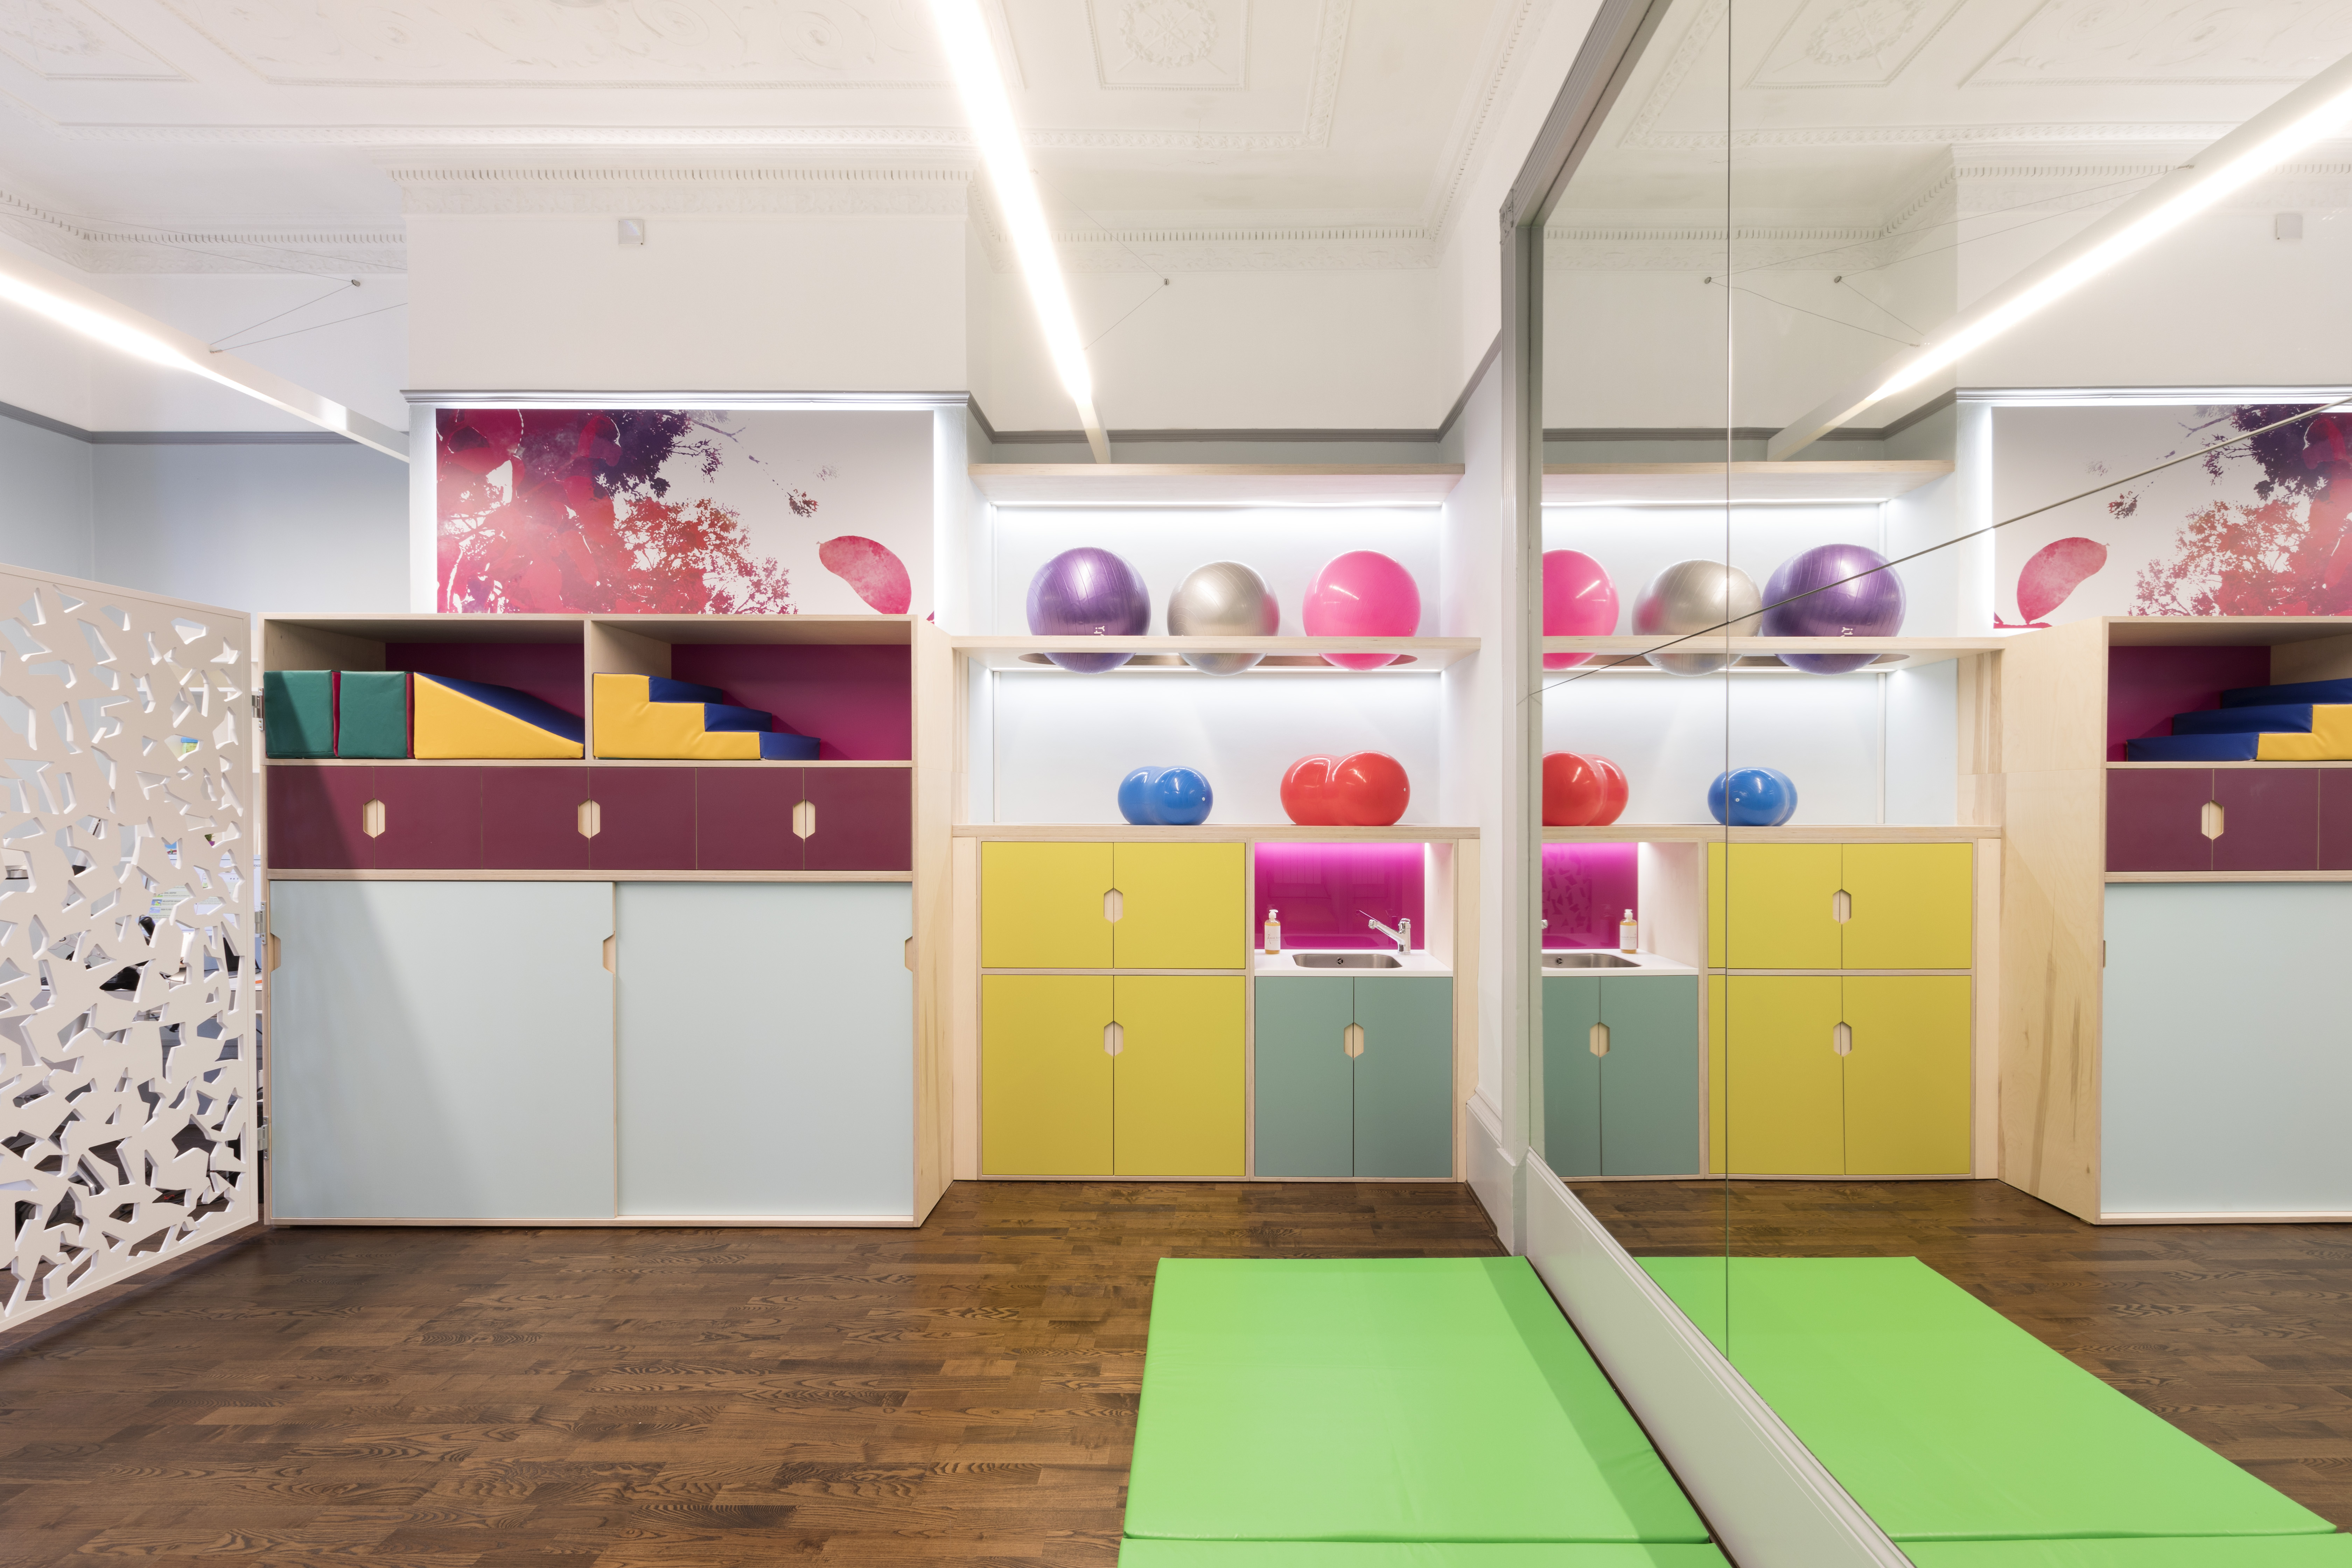 Bright and colourful largescale wall prints in pediatric healthcare interior